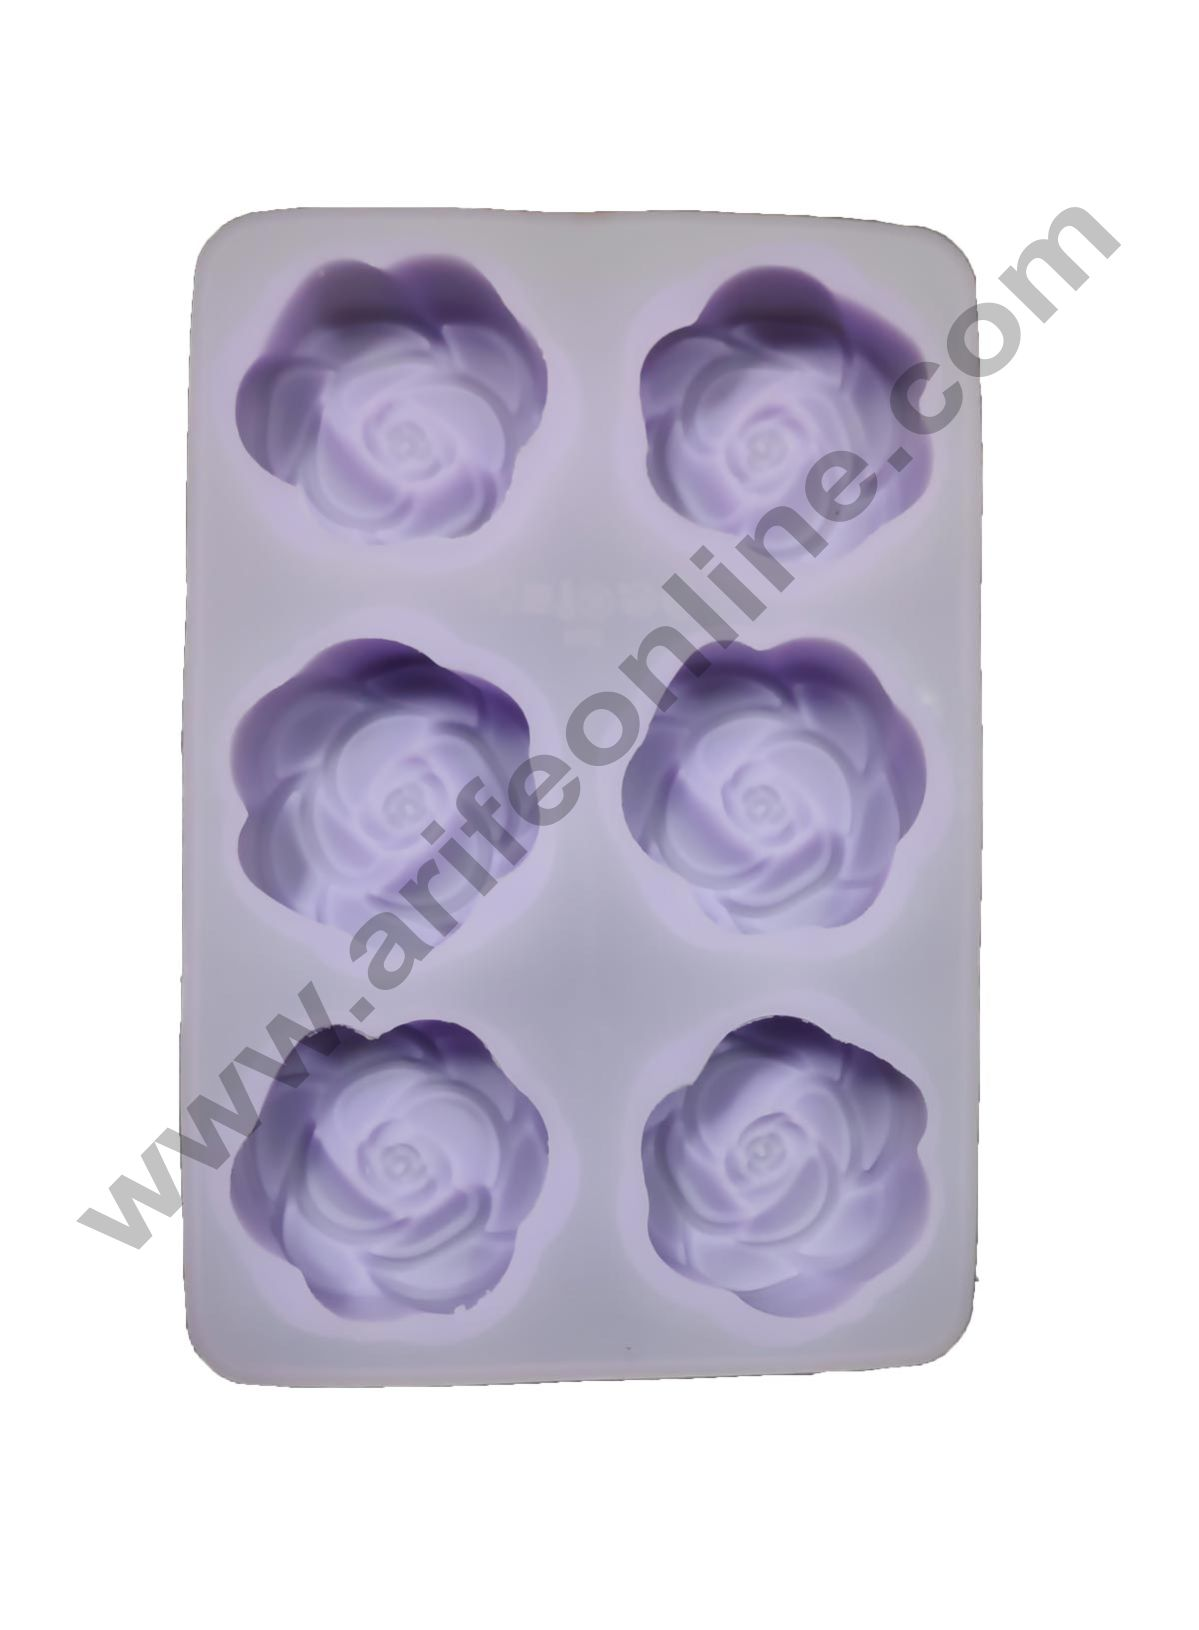 Cake Decor Silicon 6 Cavity, Rose Shape, Non Sticky Mold for soap,Chocolate, Fondant Sugar bakeware Mold